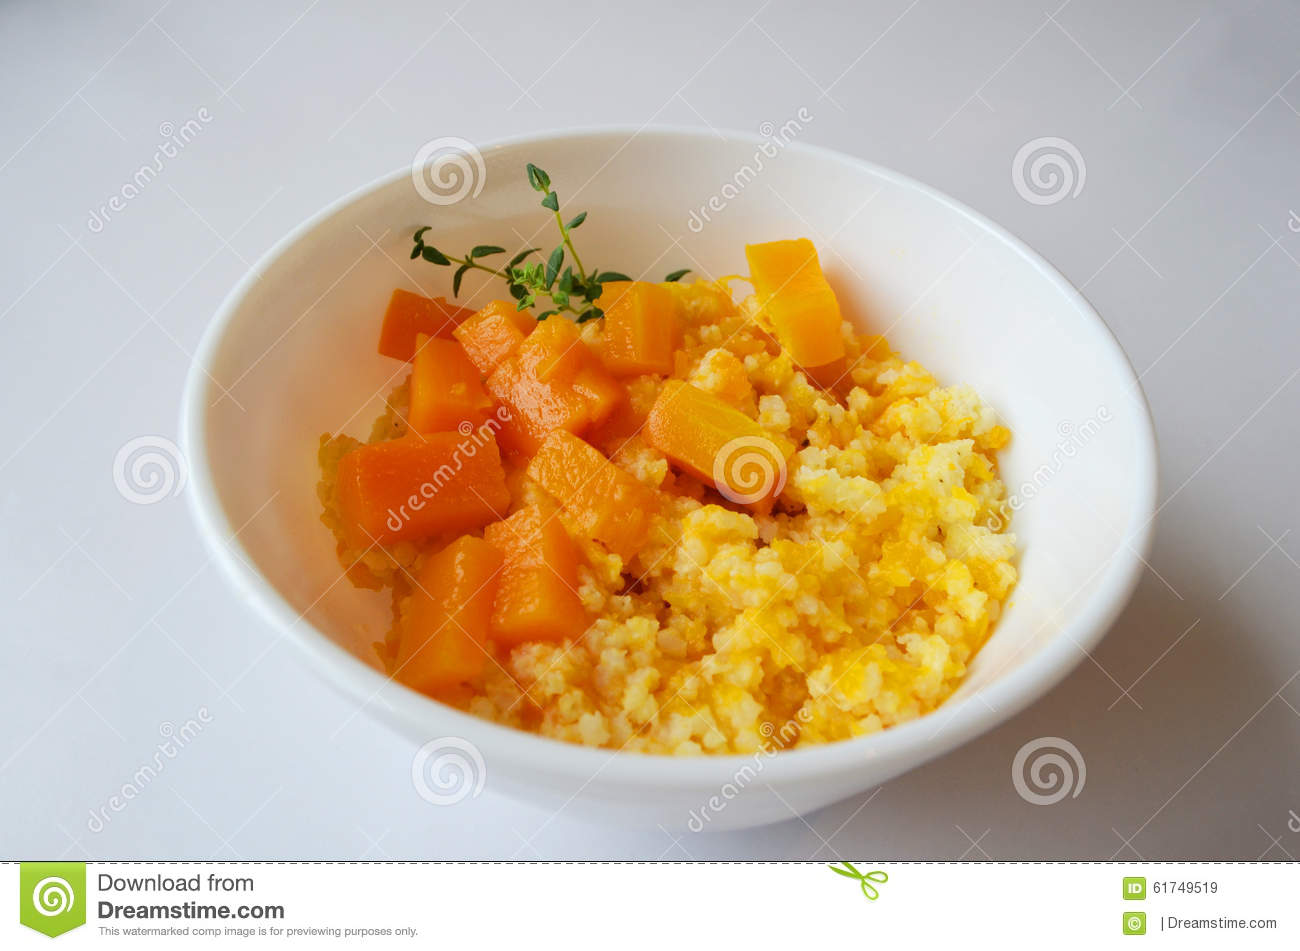 Millet Porridge With Pumpkin Stock Photo - Image: 61749519